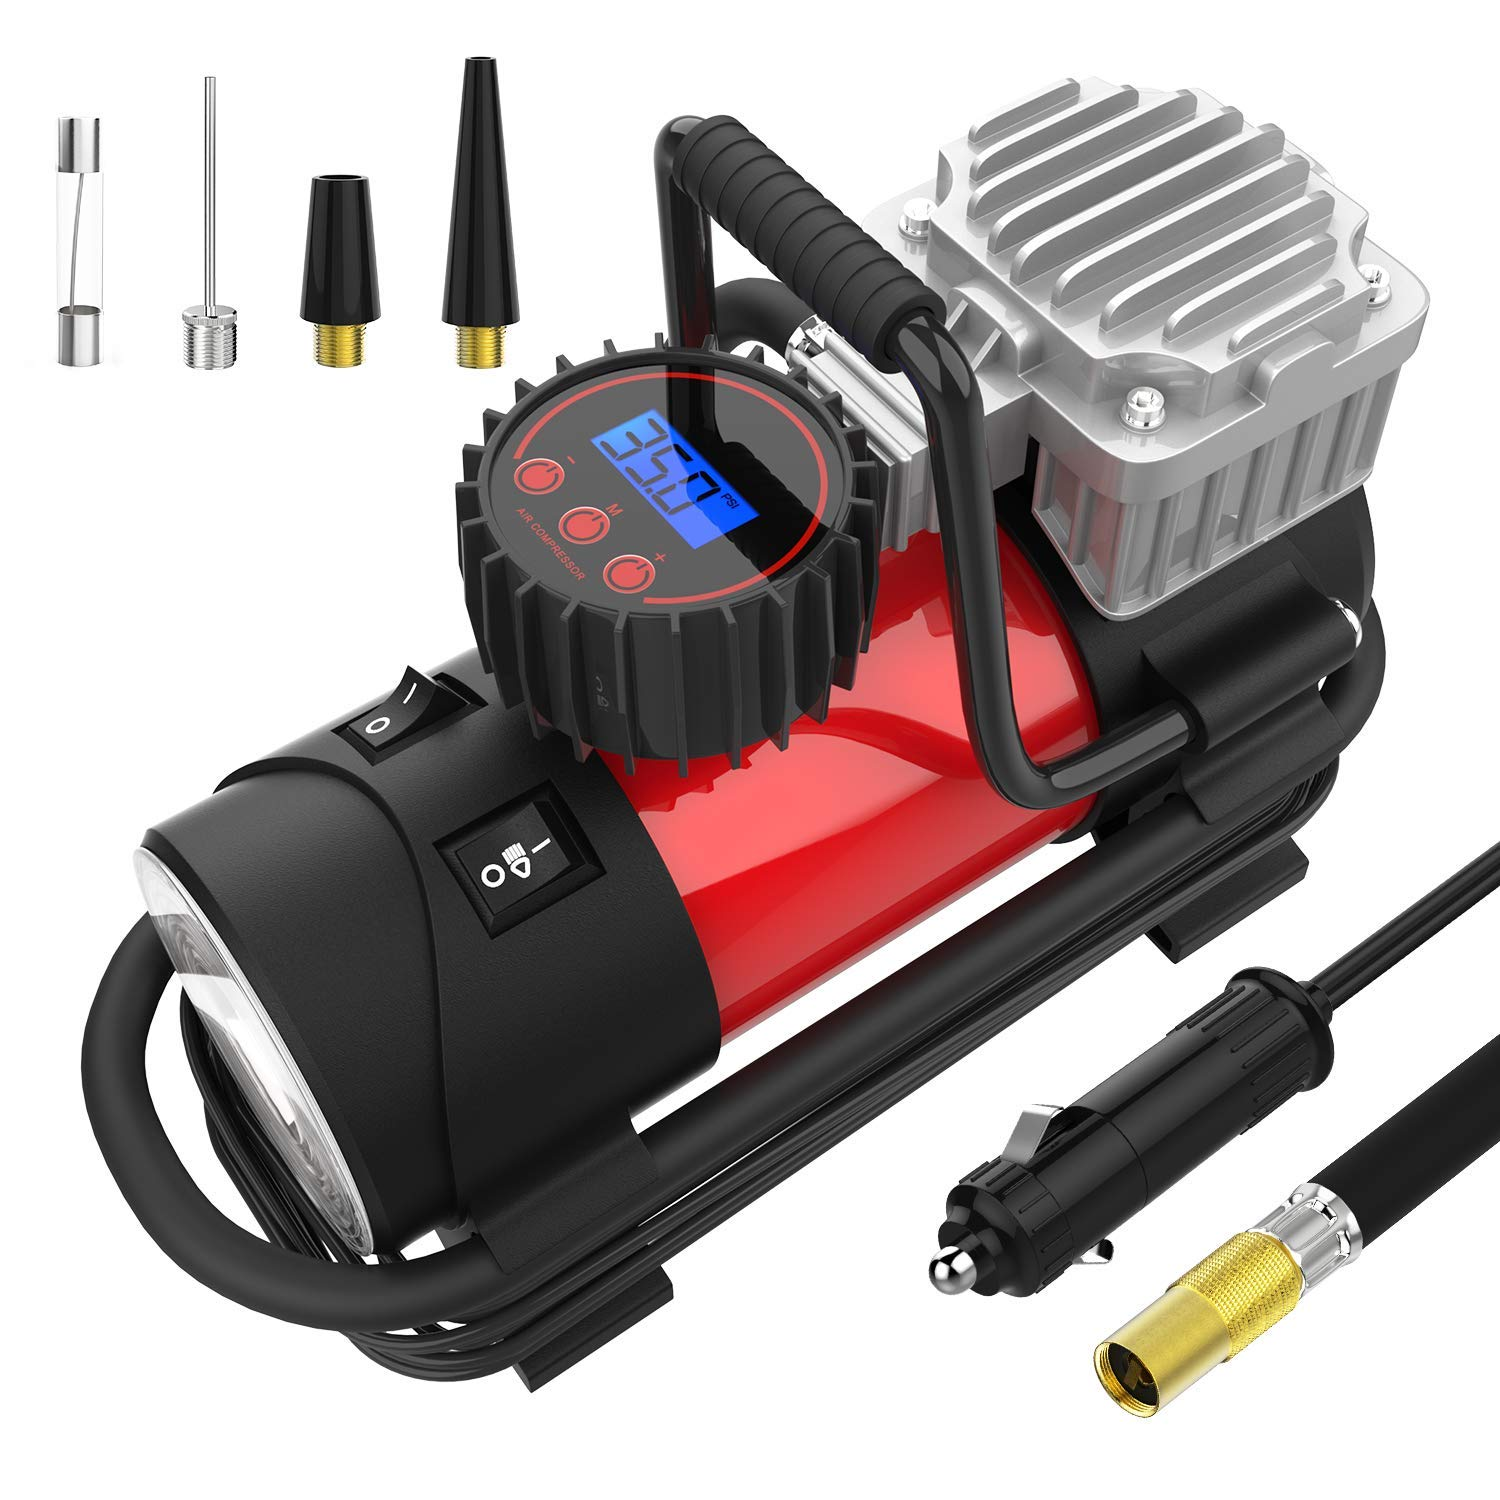 Tire air compressor for car types of hinges for doors